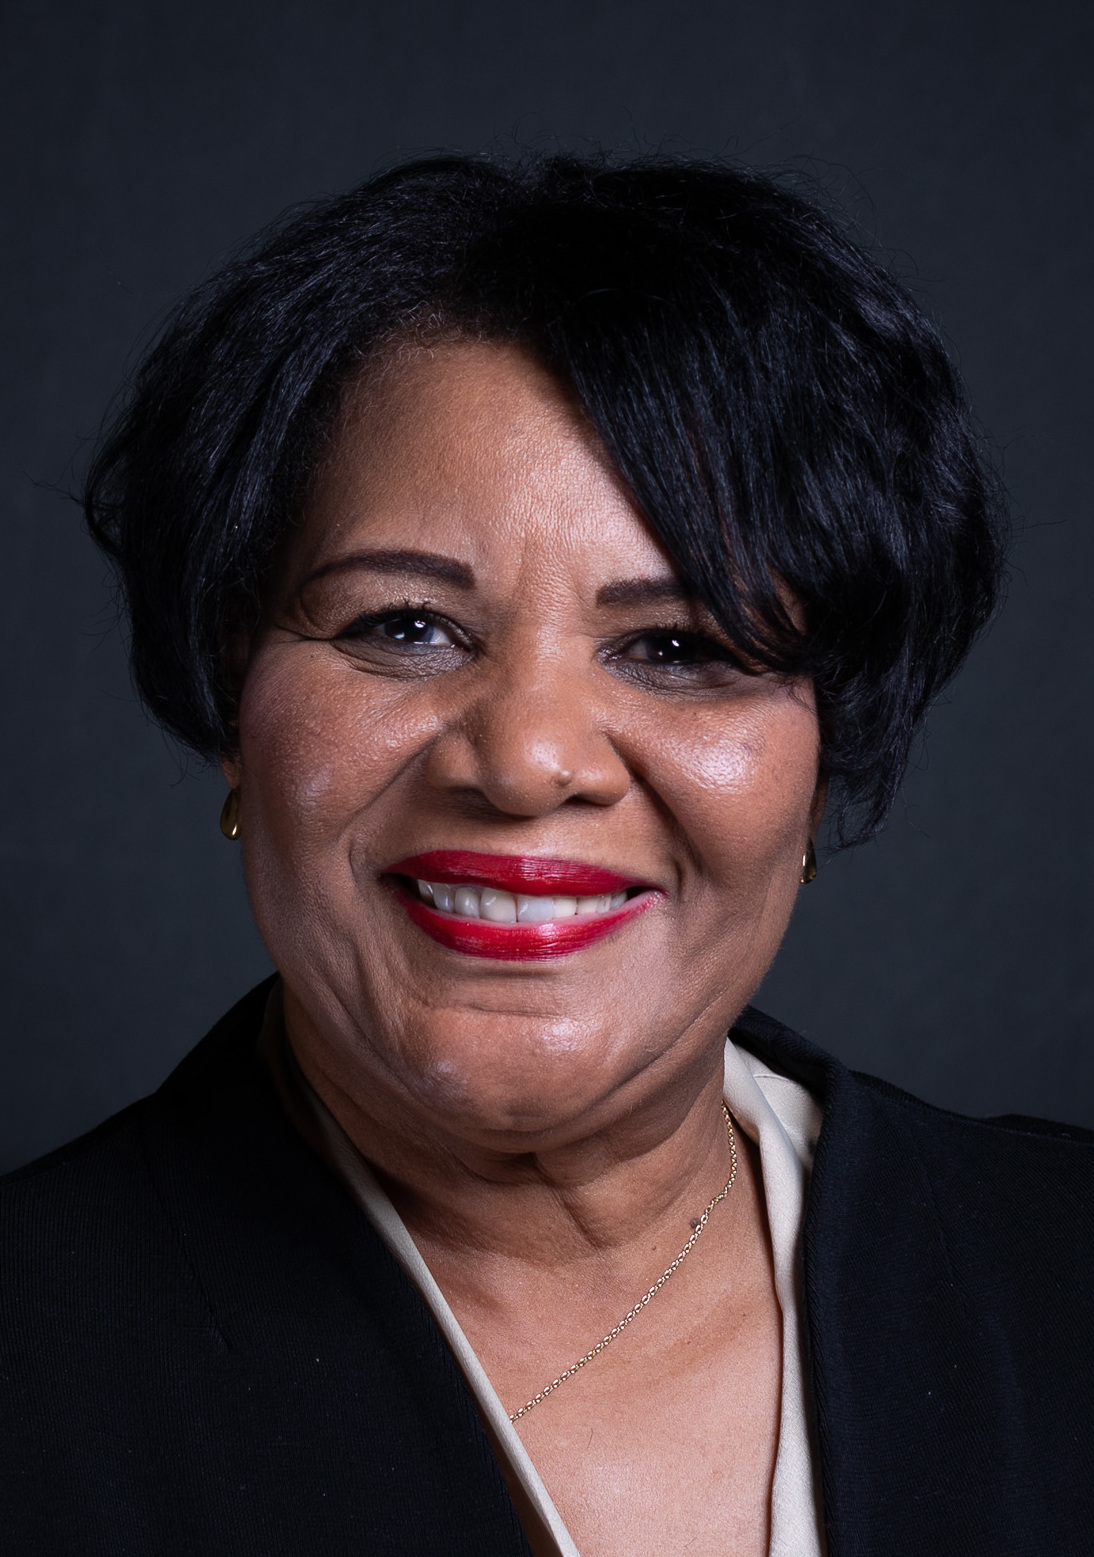 Alice Marie Johnson - Wikipedia